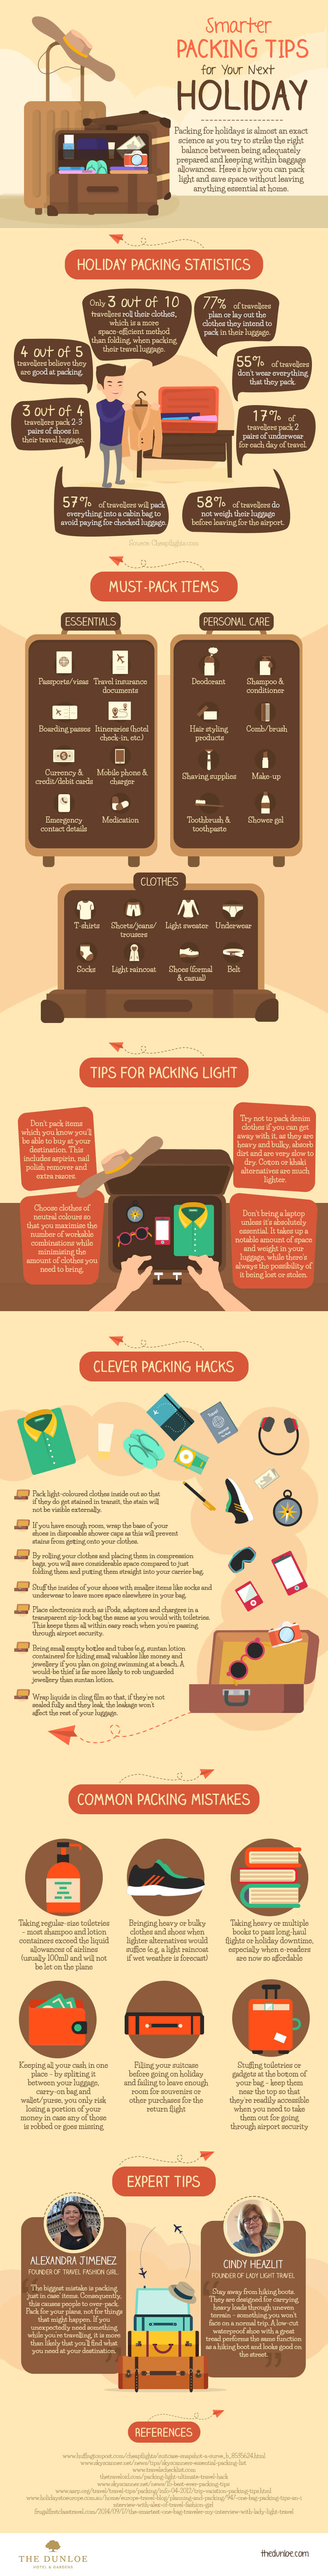 packing tips infographic